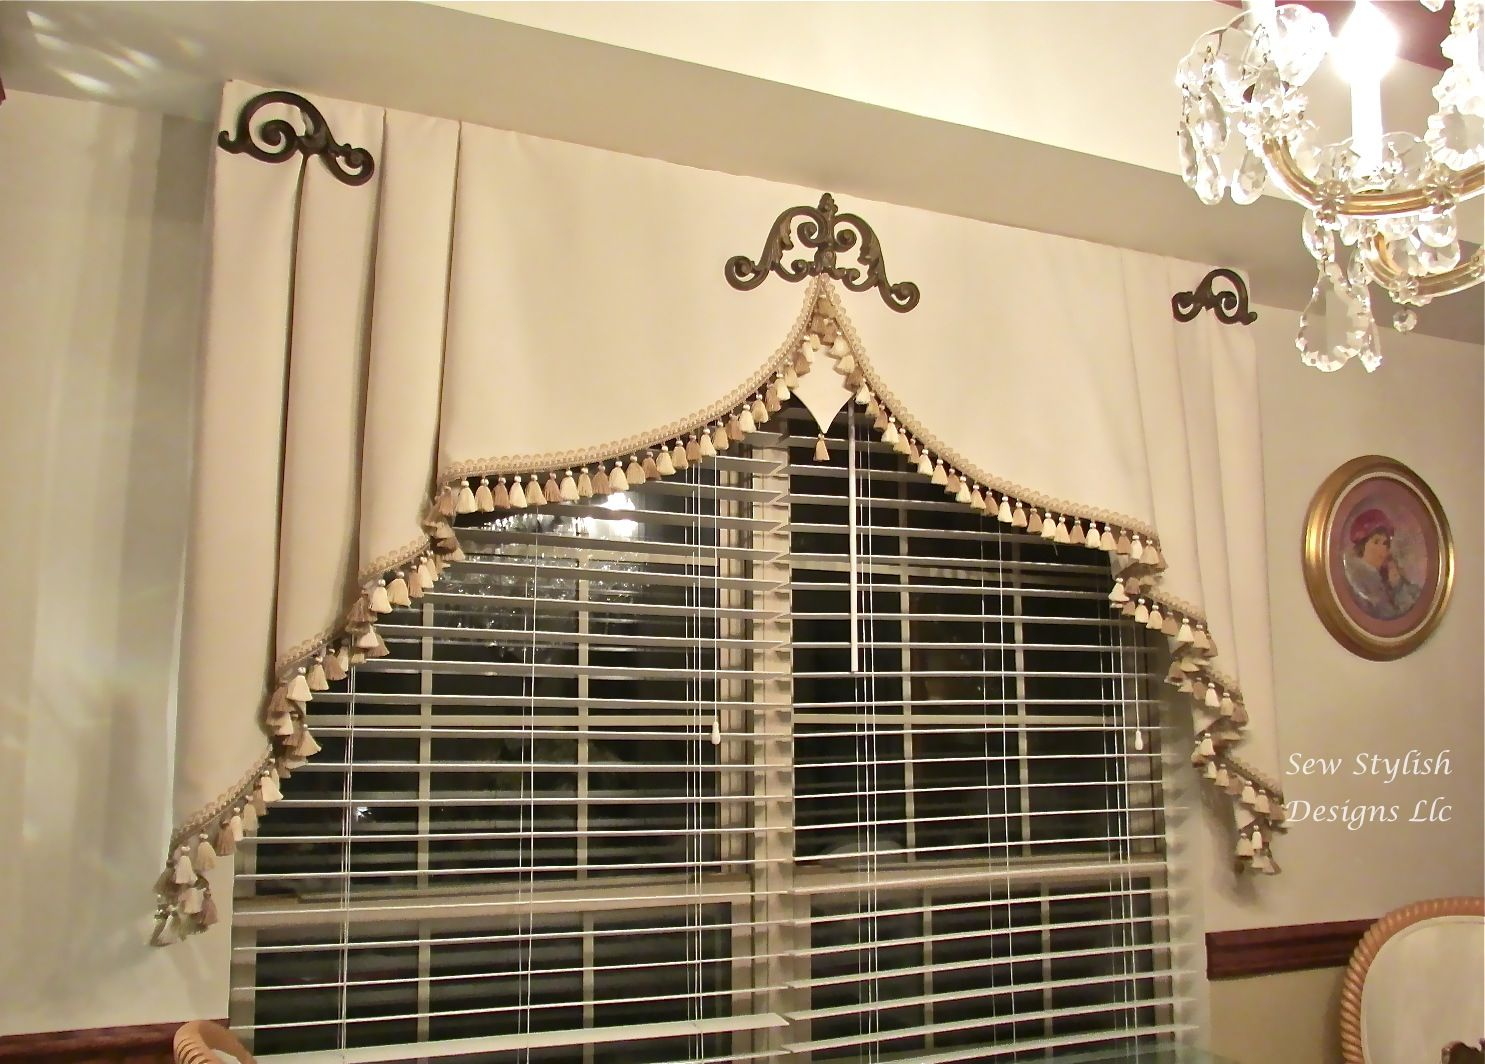 Embellished Milan Valance With Iron Scrolls And Tassel Fringe In Endearing Dining Room Valance Decorating Inspiration